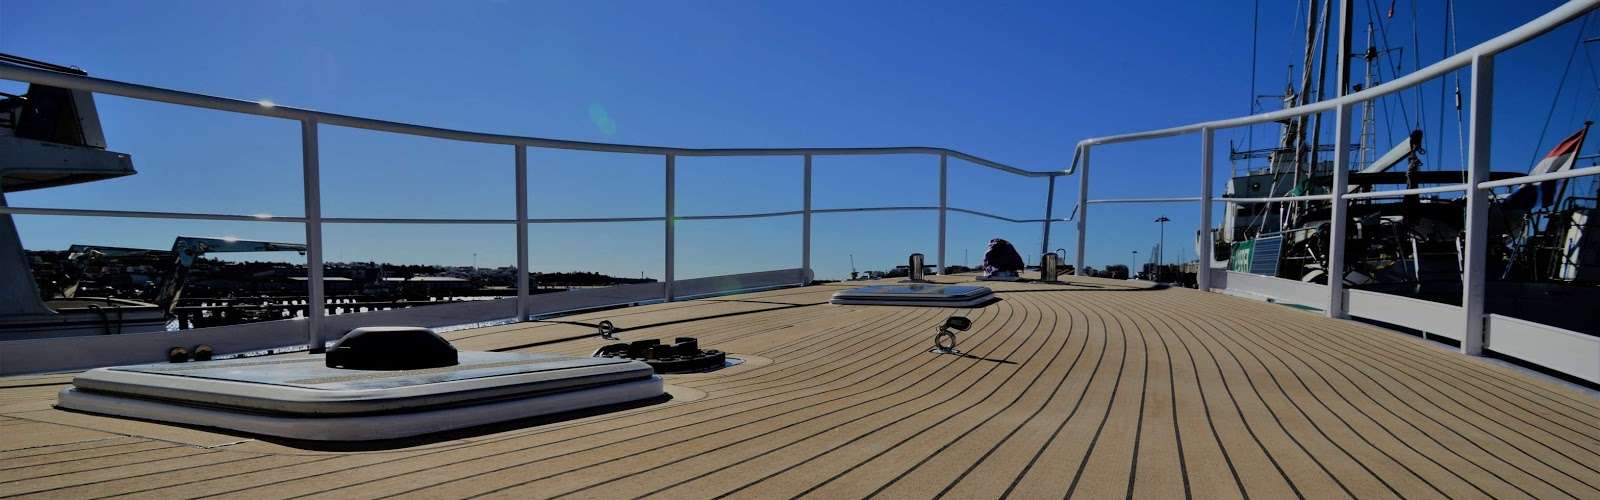 Synthetic teak decking on a power boat